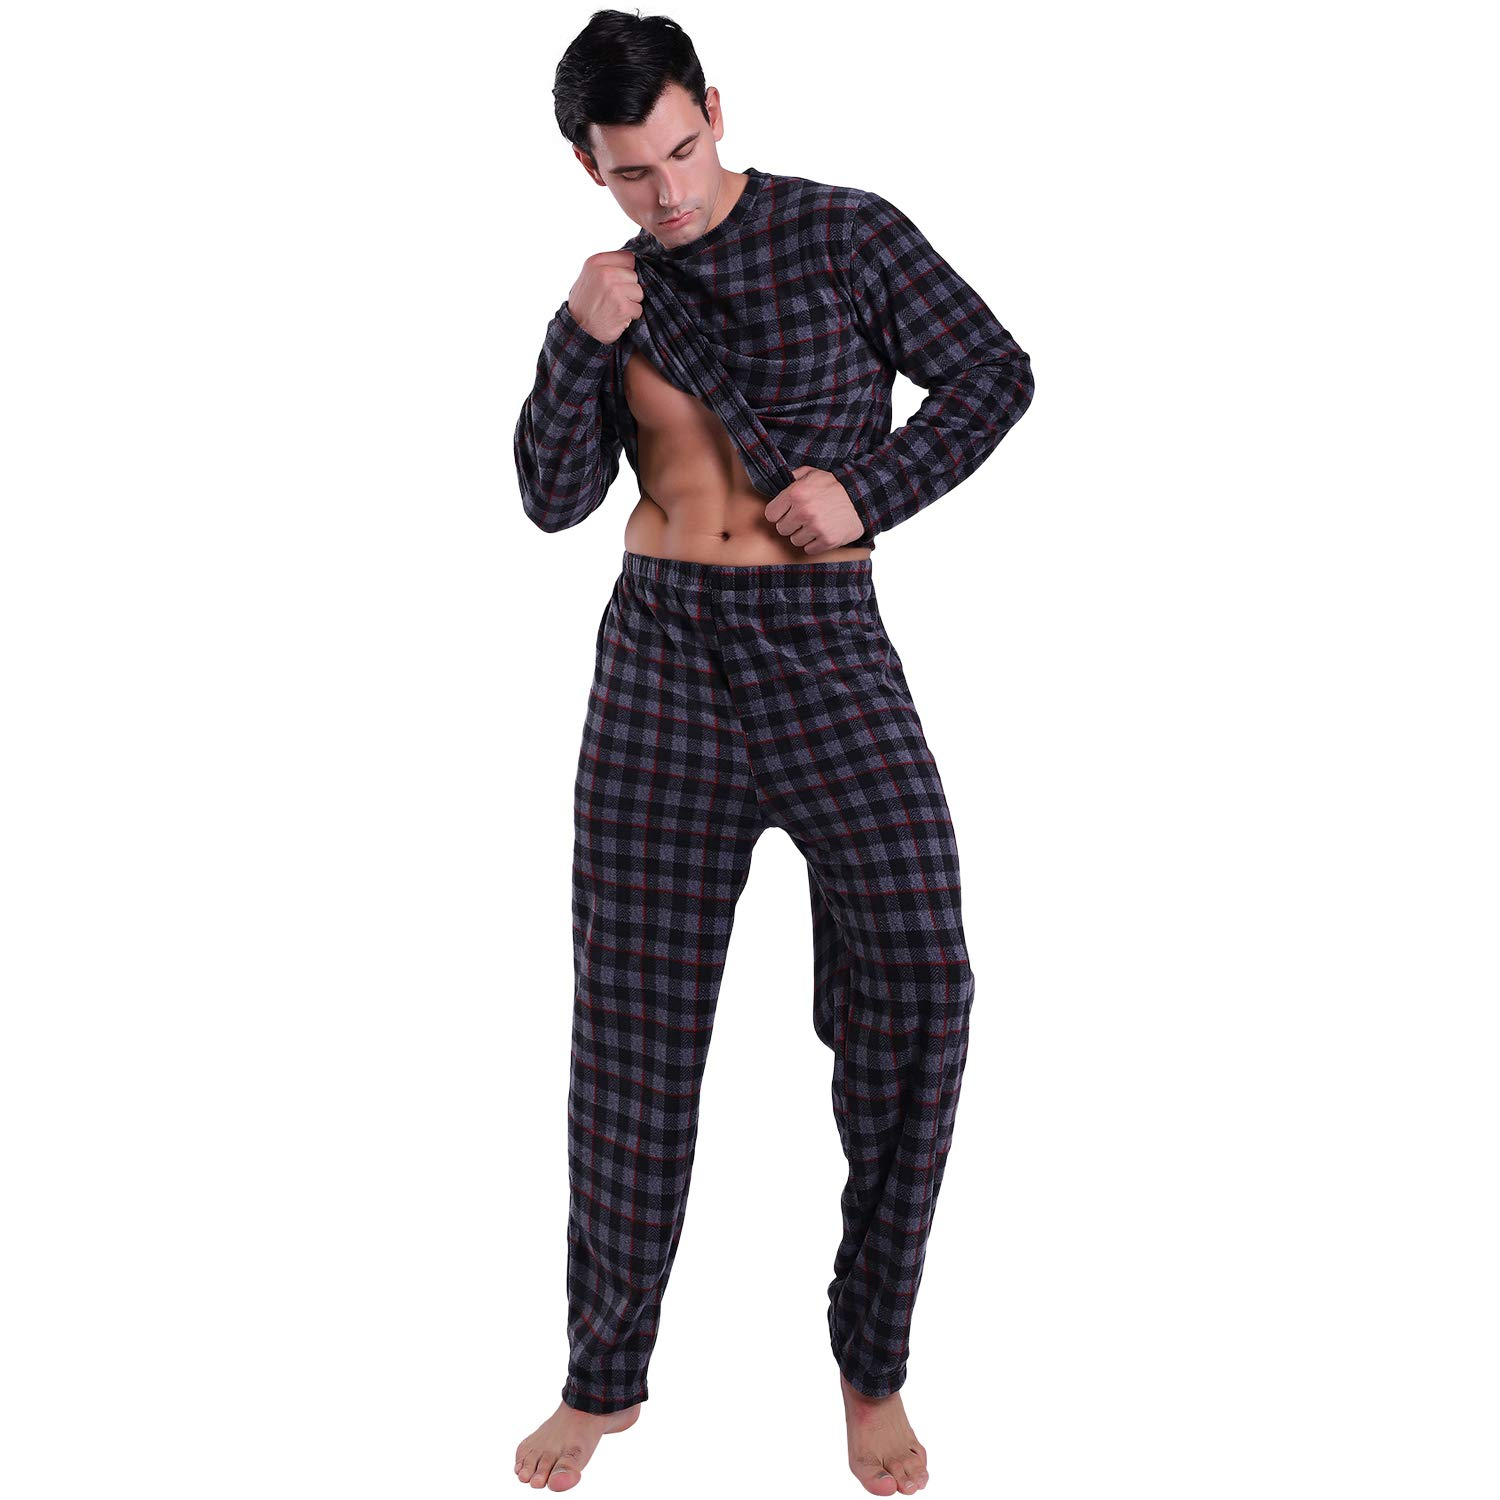 KEMUSI Pajama Set for Mens with Pullover Long Sleeve,Elastic Waistband,Full Length,Soft Flannel Lightweight PJs